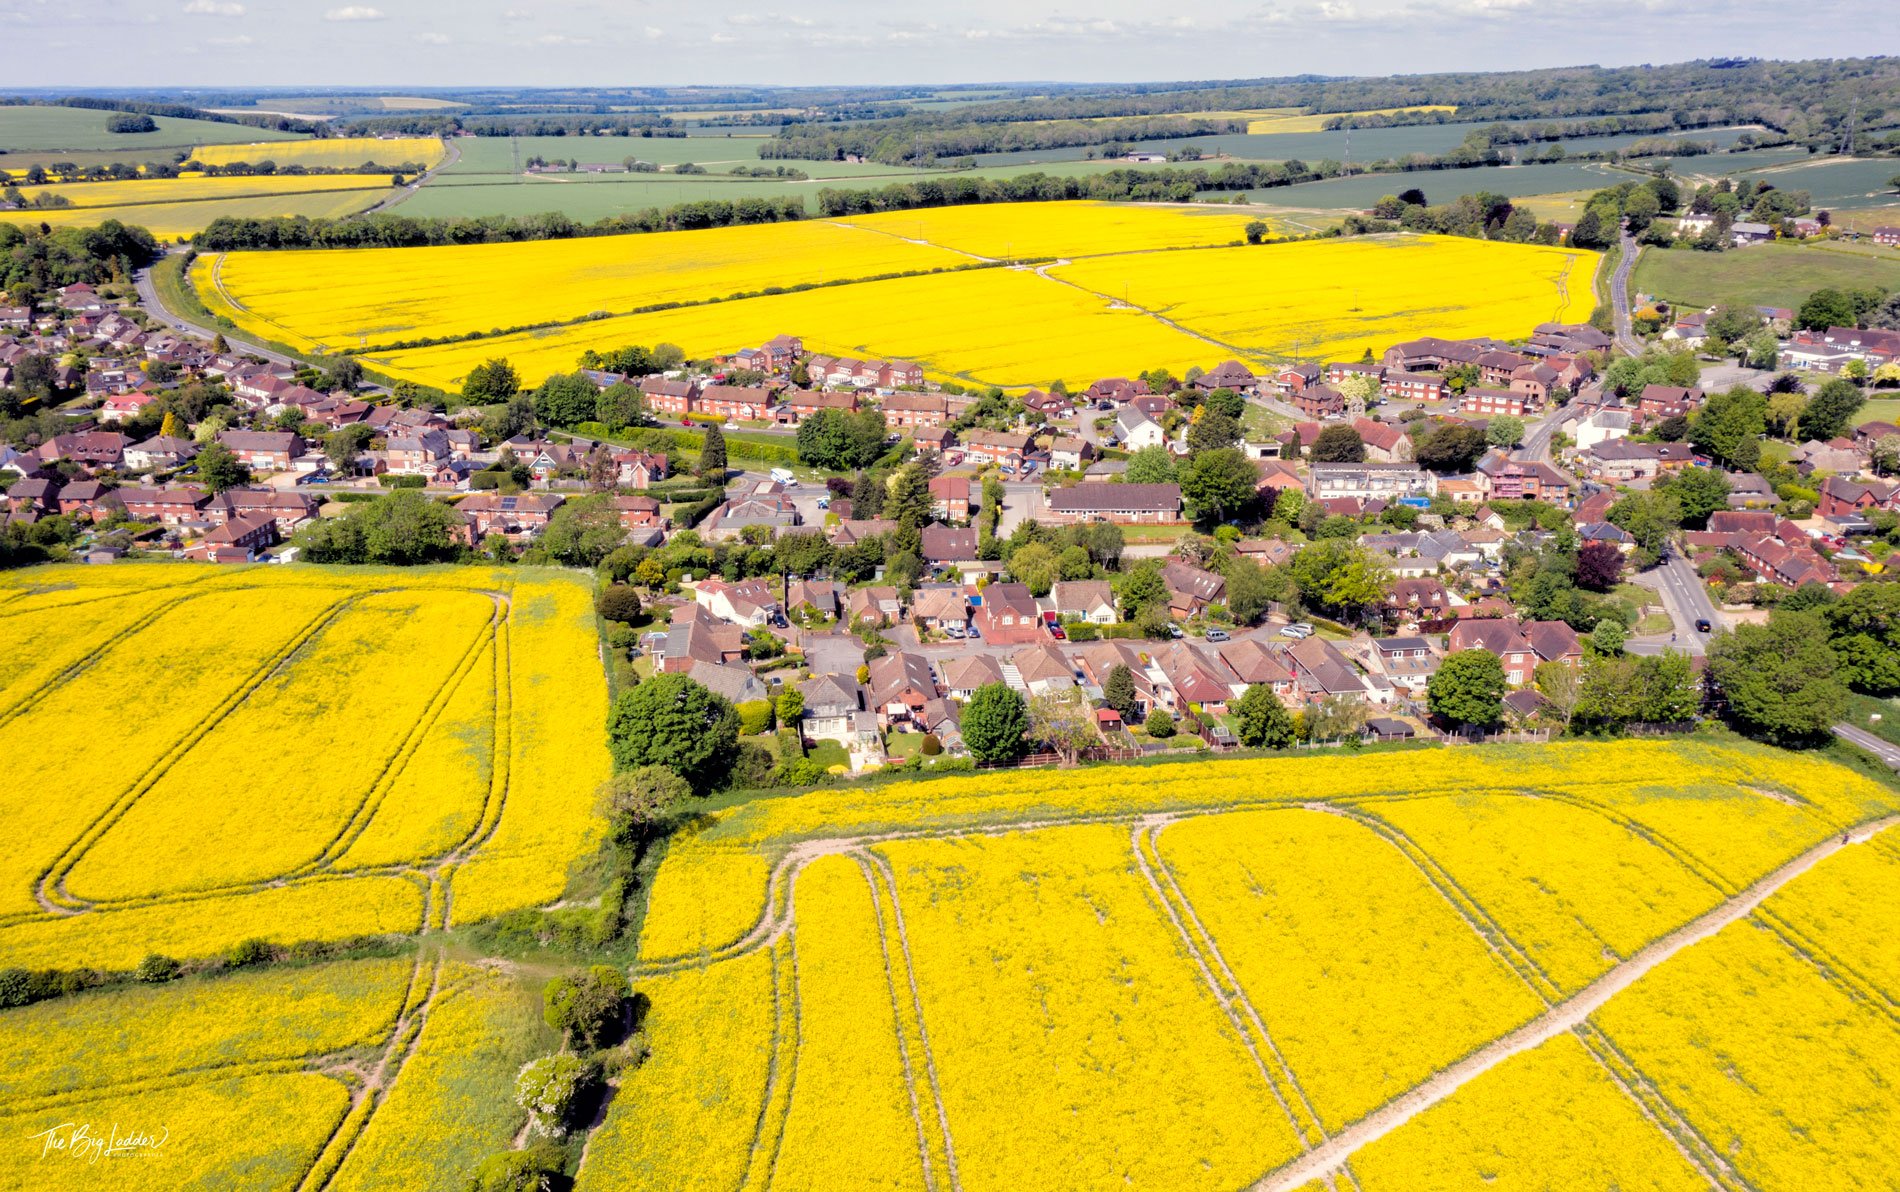 Fields of Gold - Clanfield, Hampshire